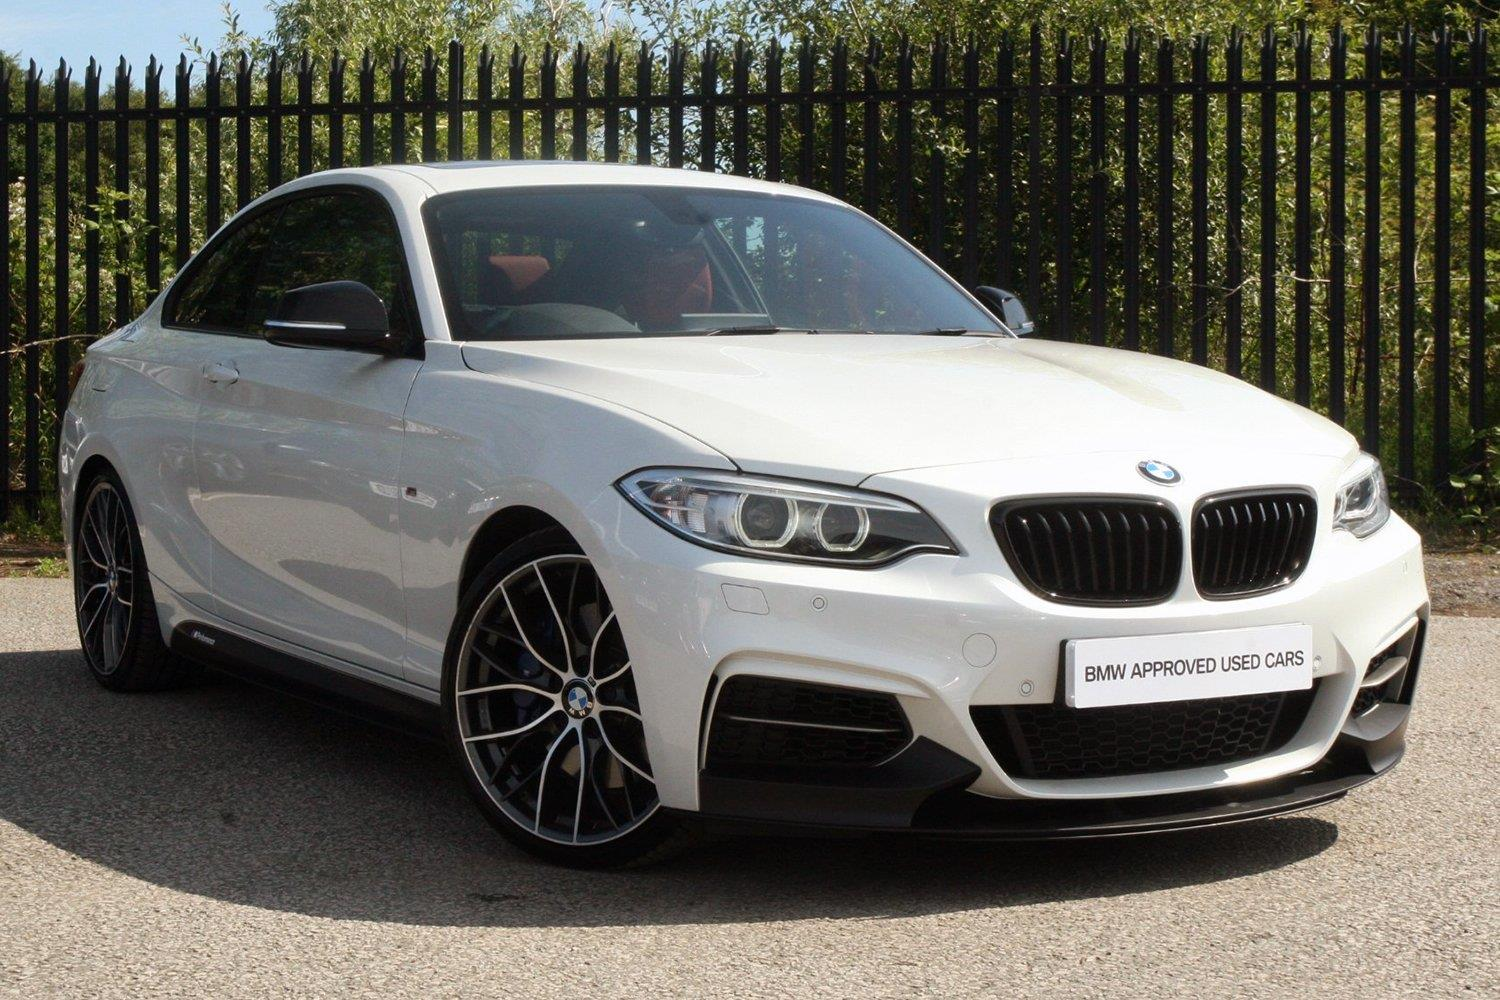 BMW 2 Series Coupé PJ66NKH - Image 1